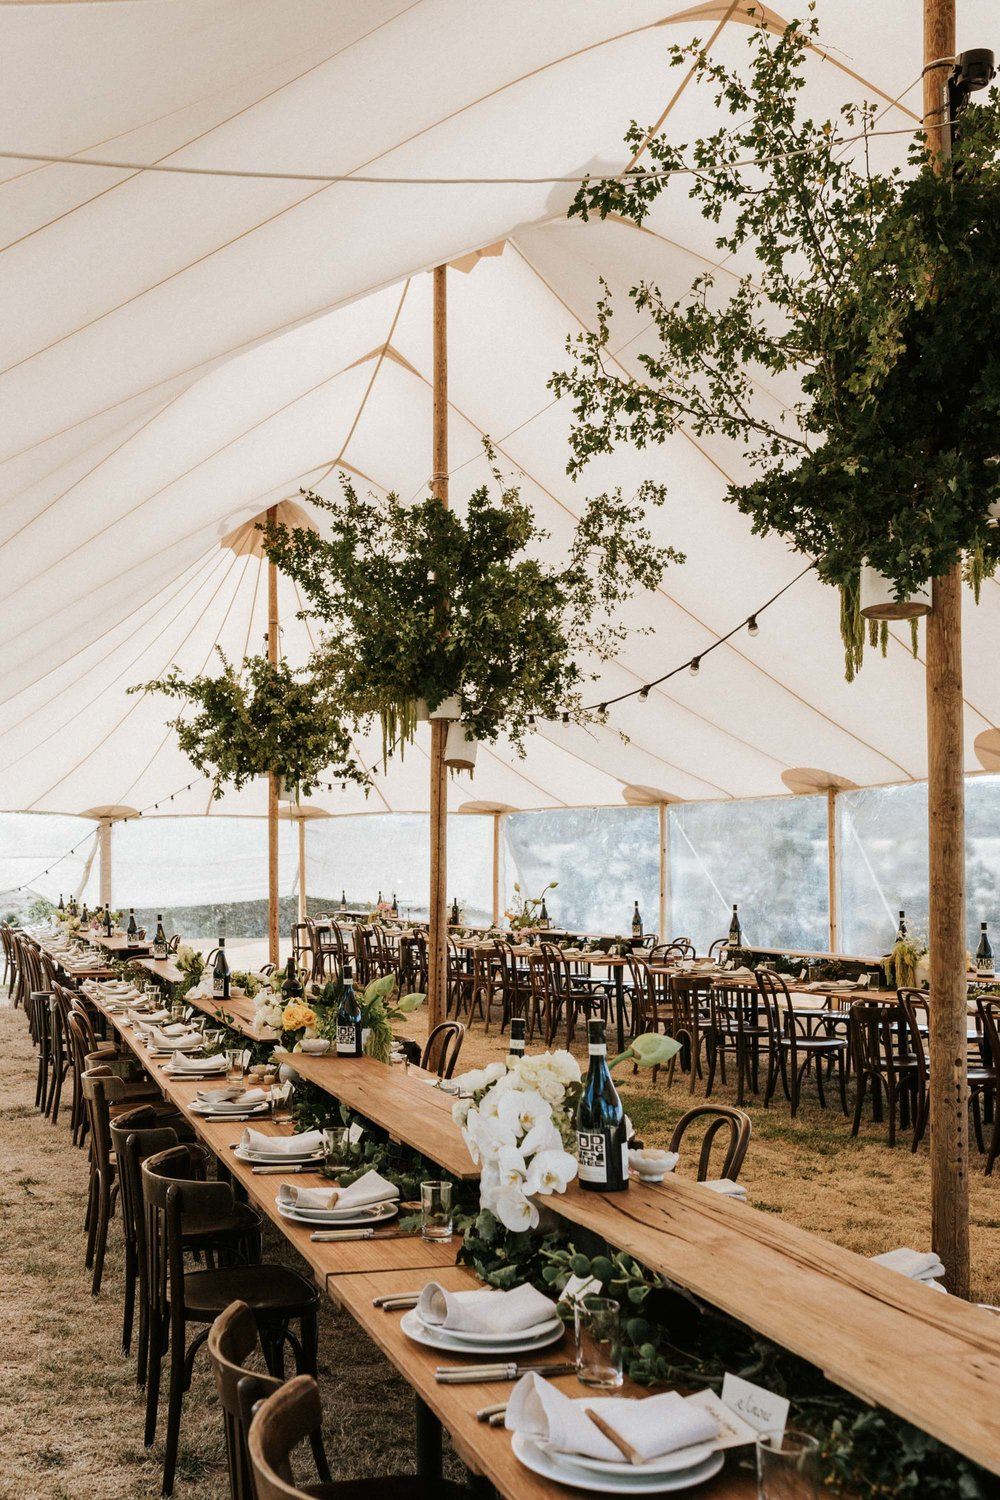 Under Sky, Sperry Tent hire for weddings - an alternative to wedding marquees